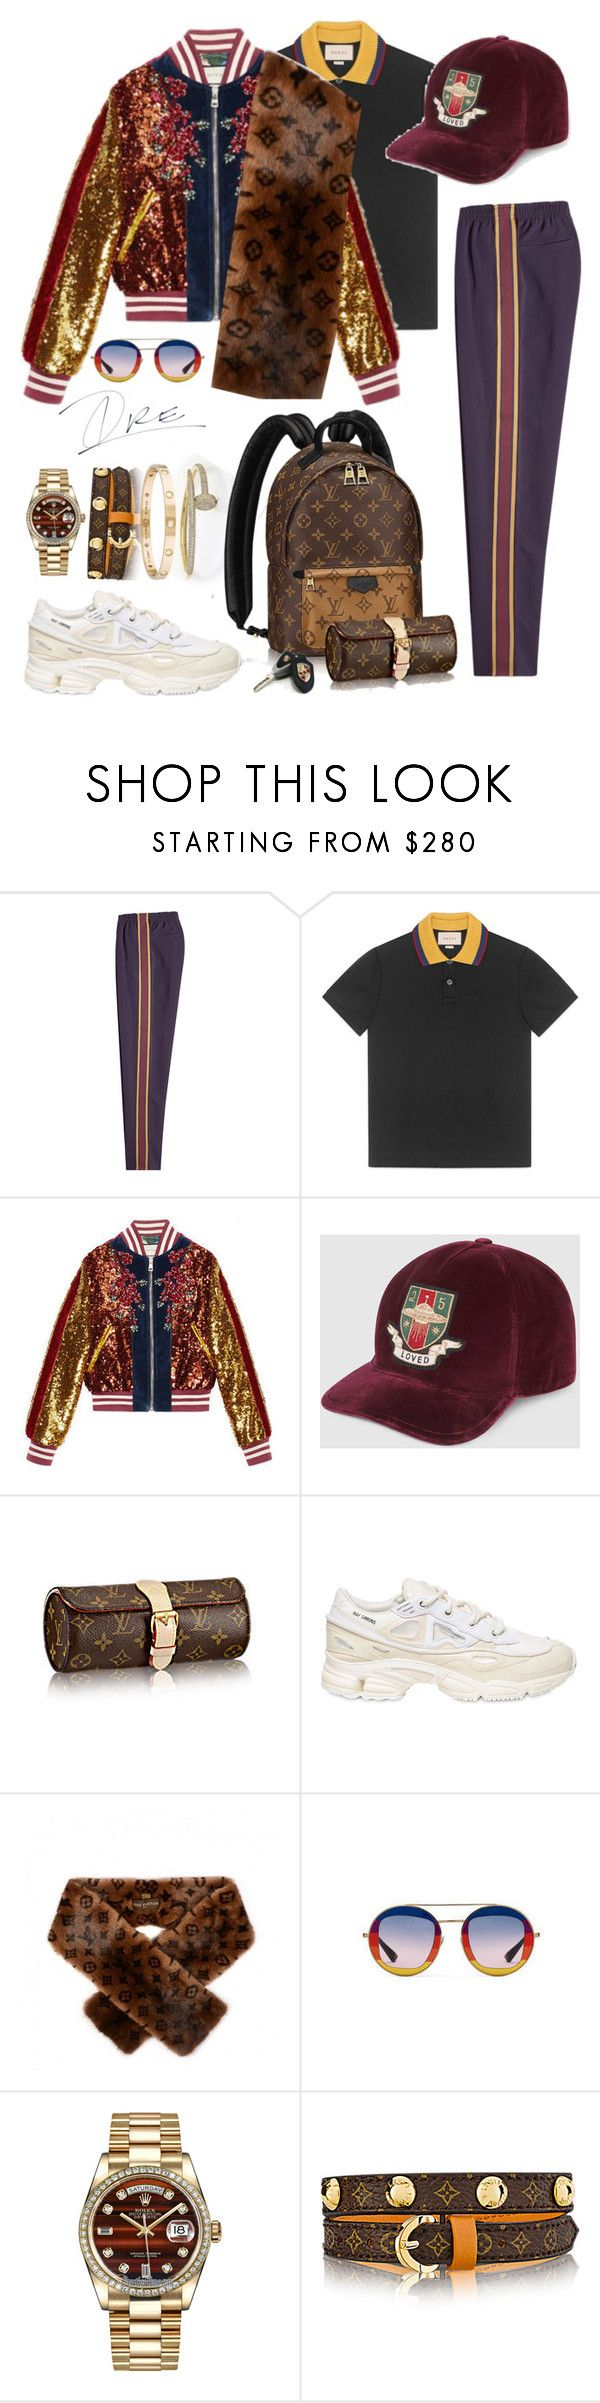 """""""Frat Leader"""" by stylinwitdre ❤ liked on Polyvore featuring Alexander McQueen, Gucci, Louis Vuitton, adidas, Rolex, Cartier, men's fashion and menswear"""